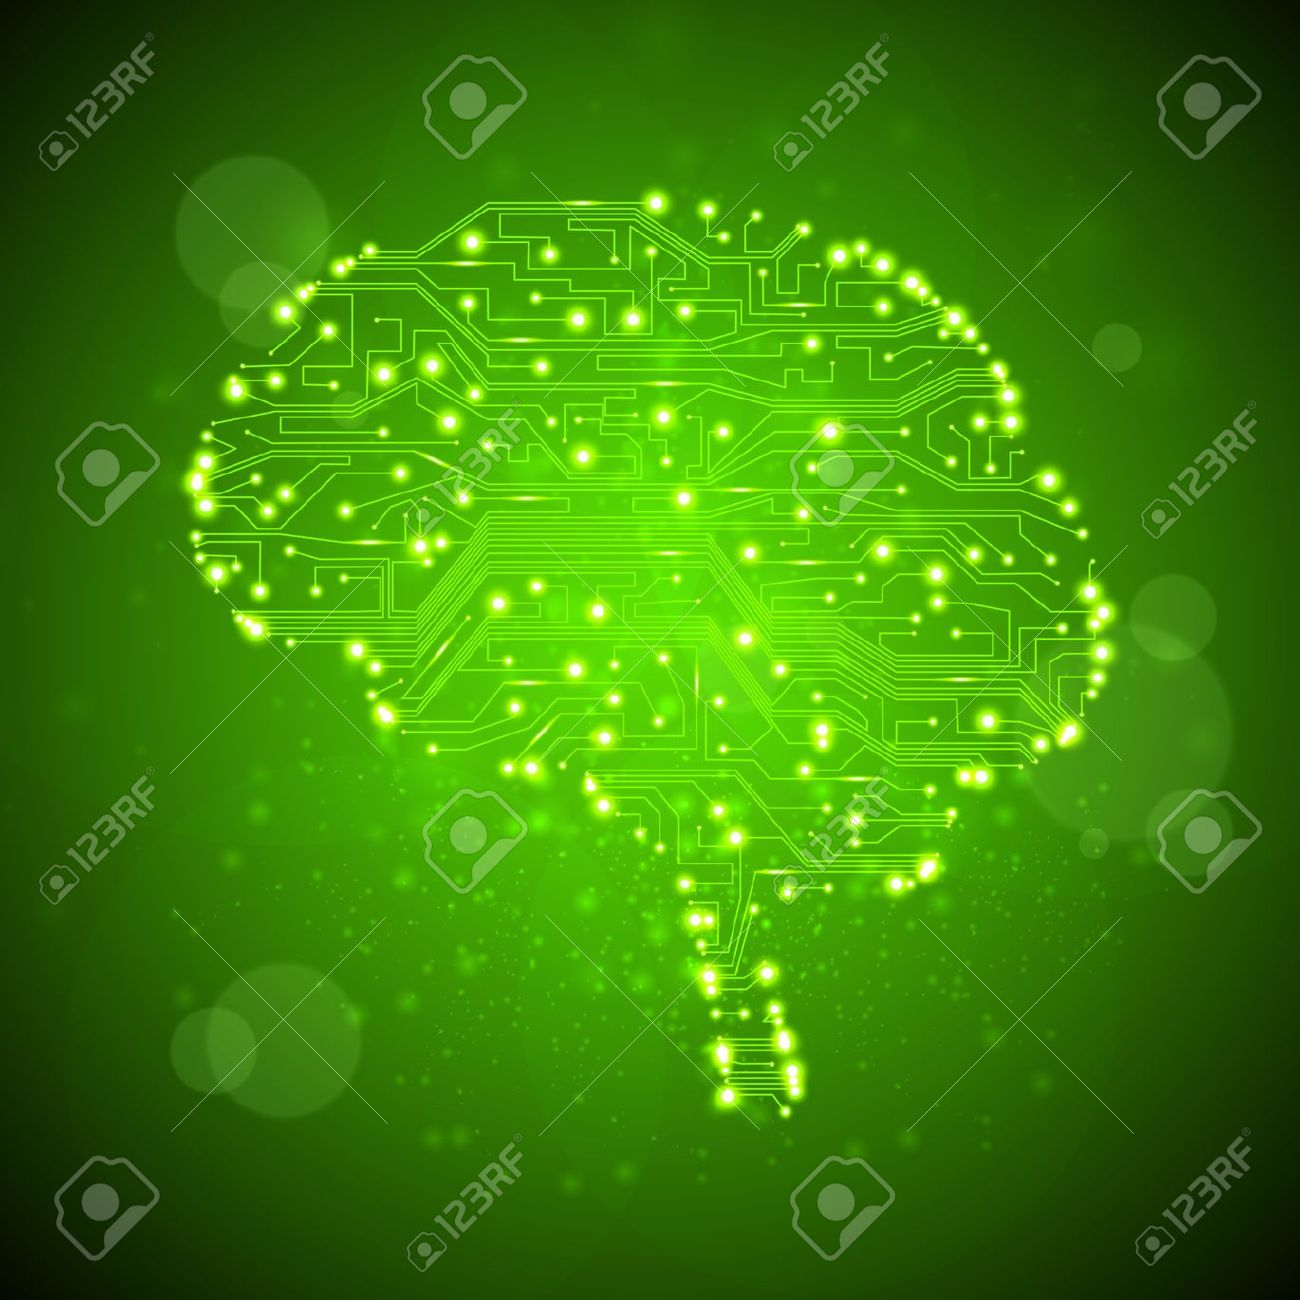 Circuit Board Background Technology Illustration Form Of Brain Design Over Green Vector Stock 12355648